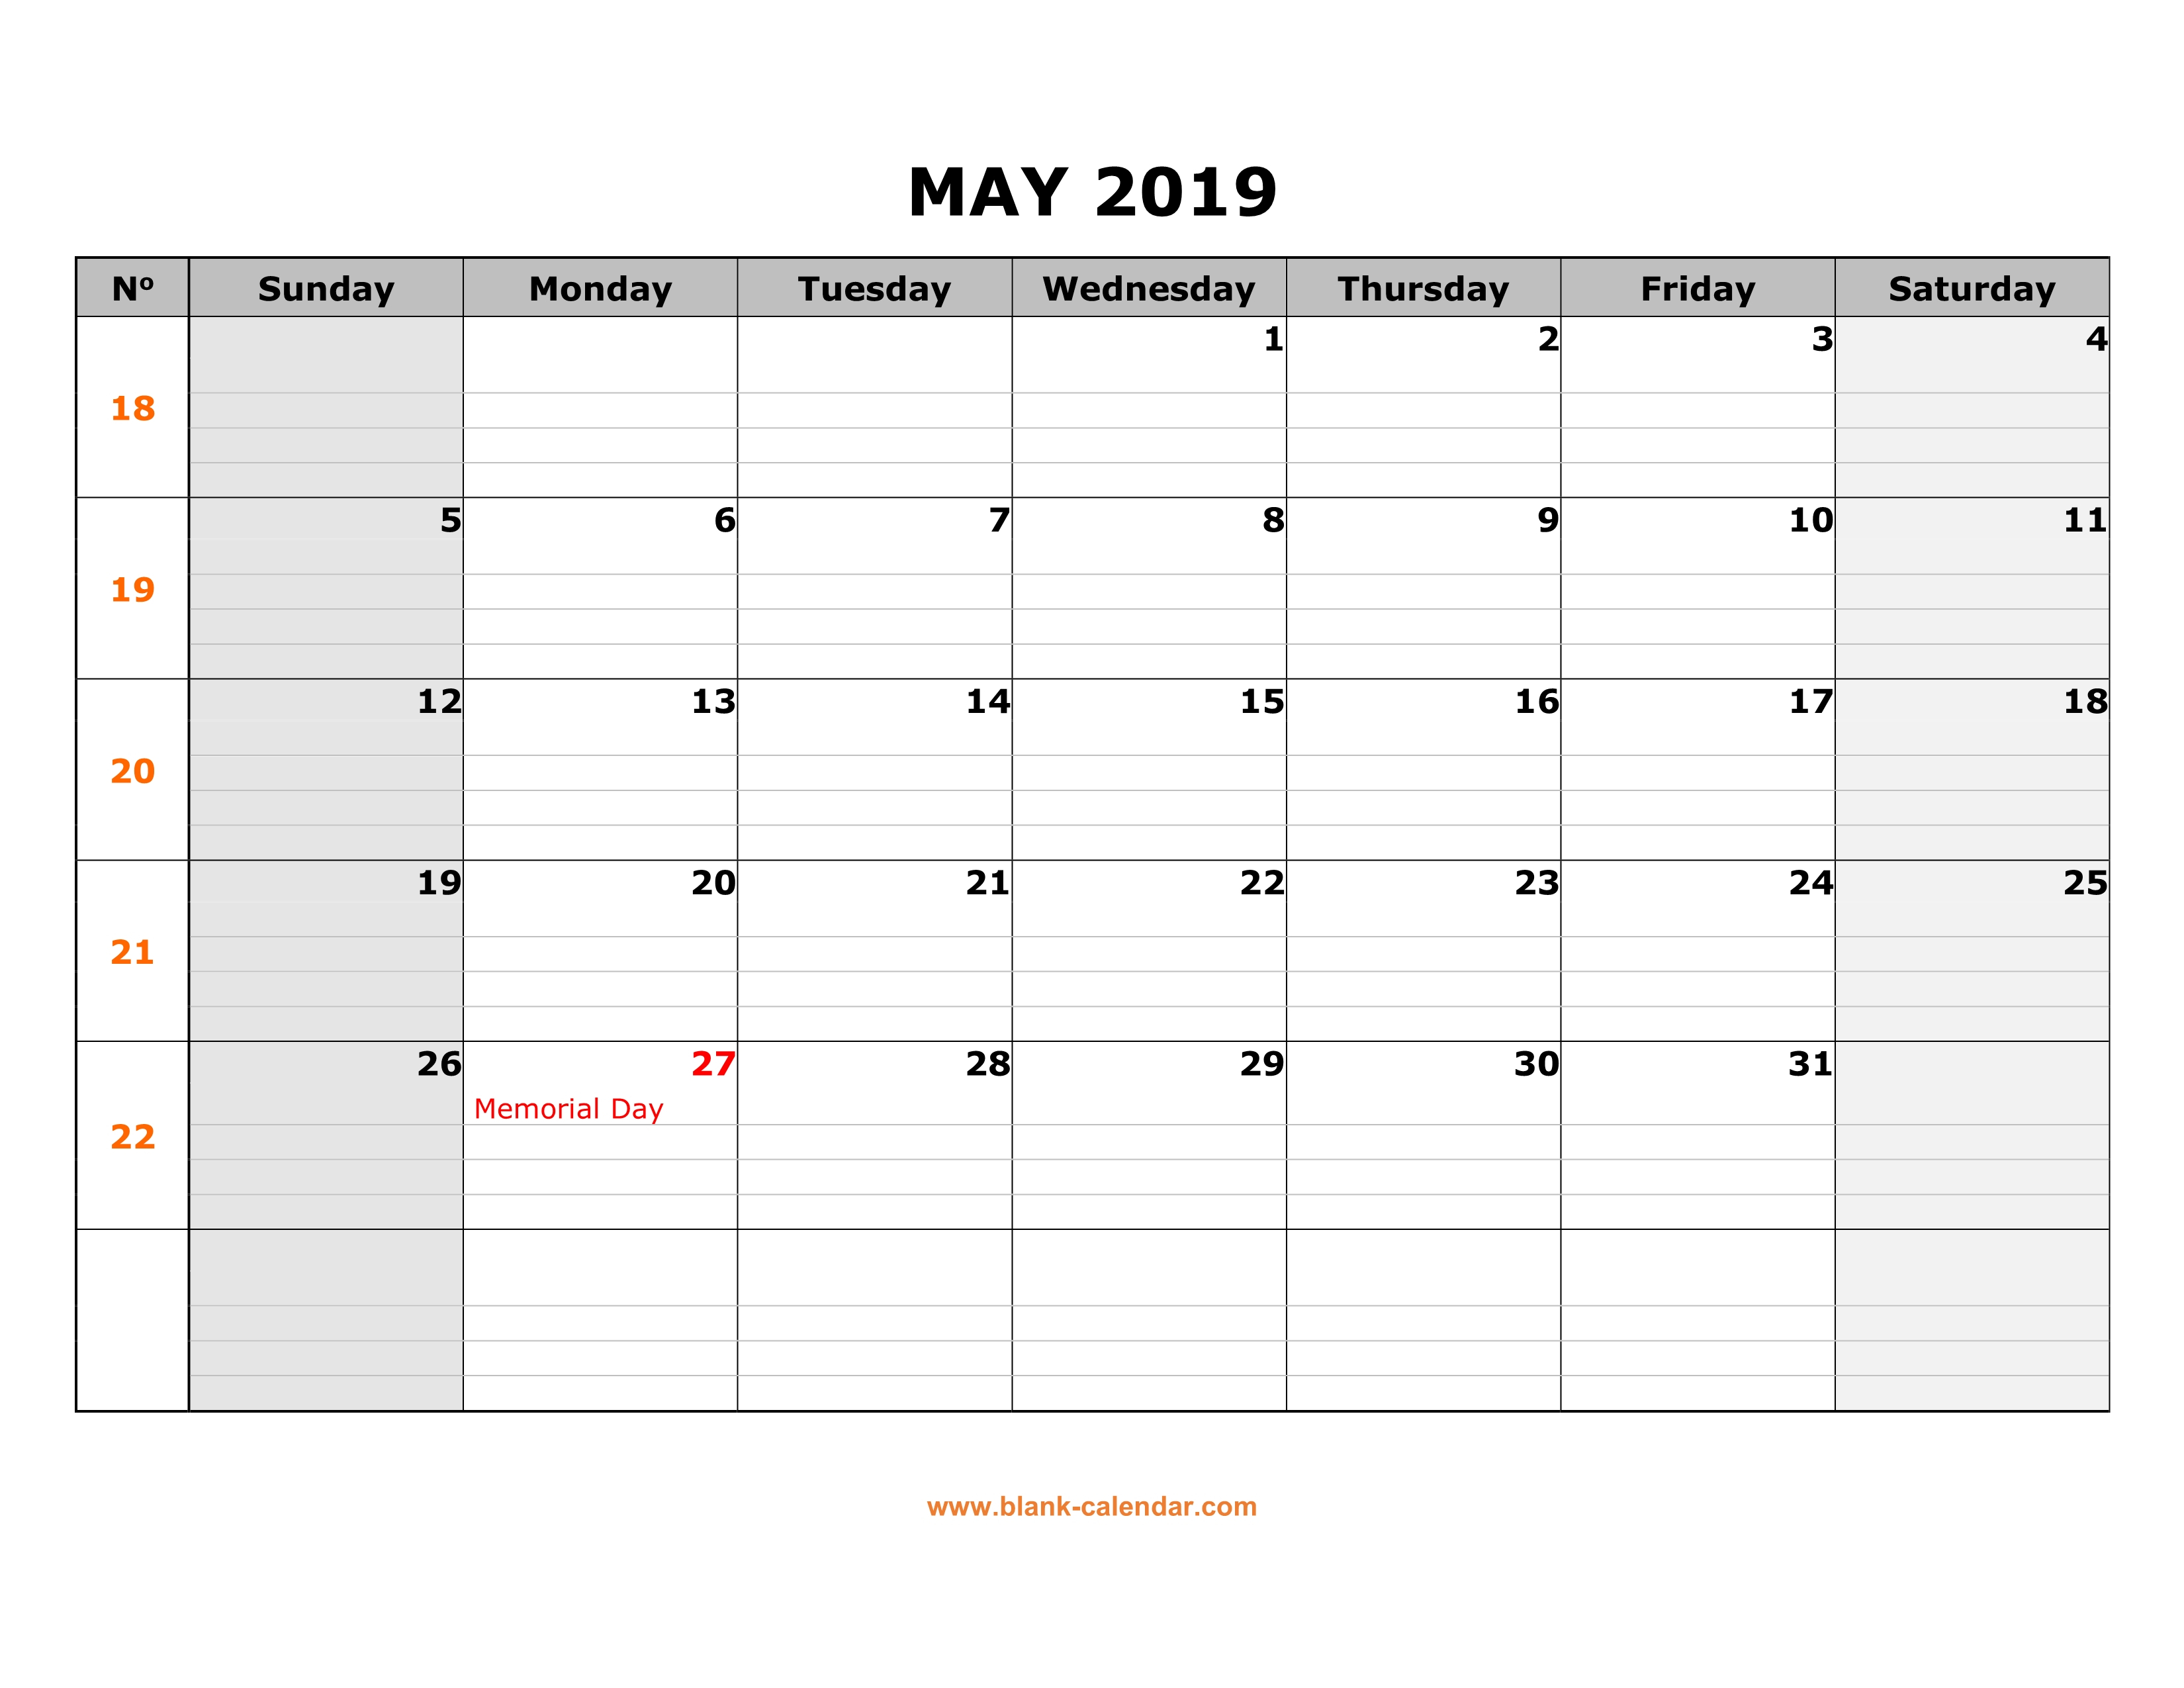 Free Download Printable May 2019 Calendar, Large Box Grid, Space For intended for Blank Calendar To Fill In